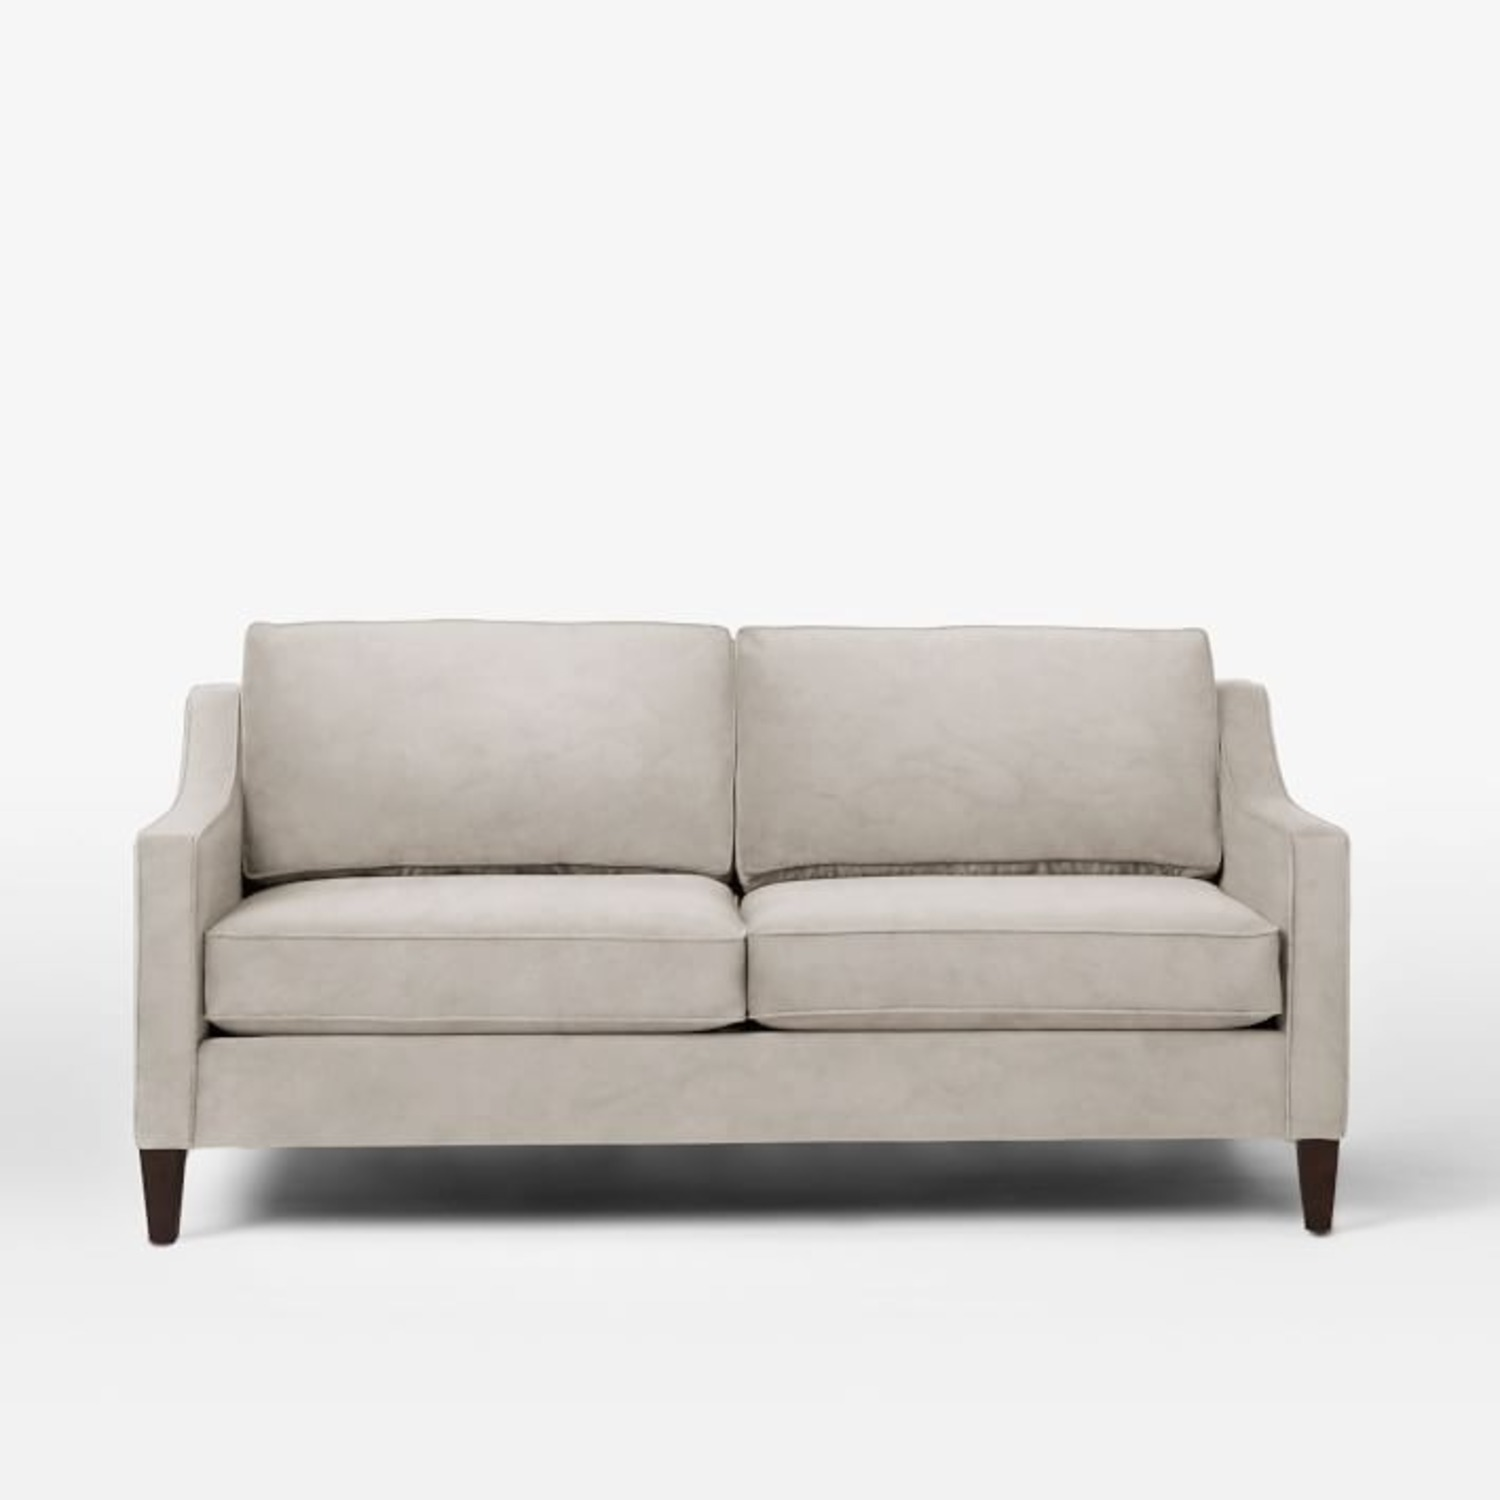 West Elm Piadge Sofa - image-2